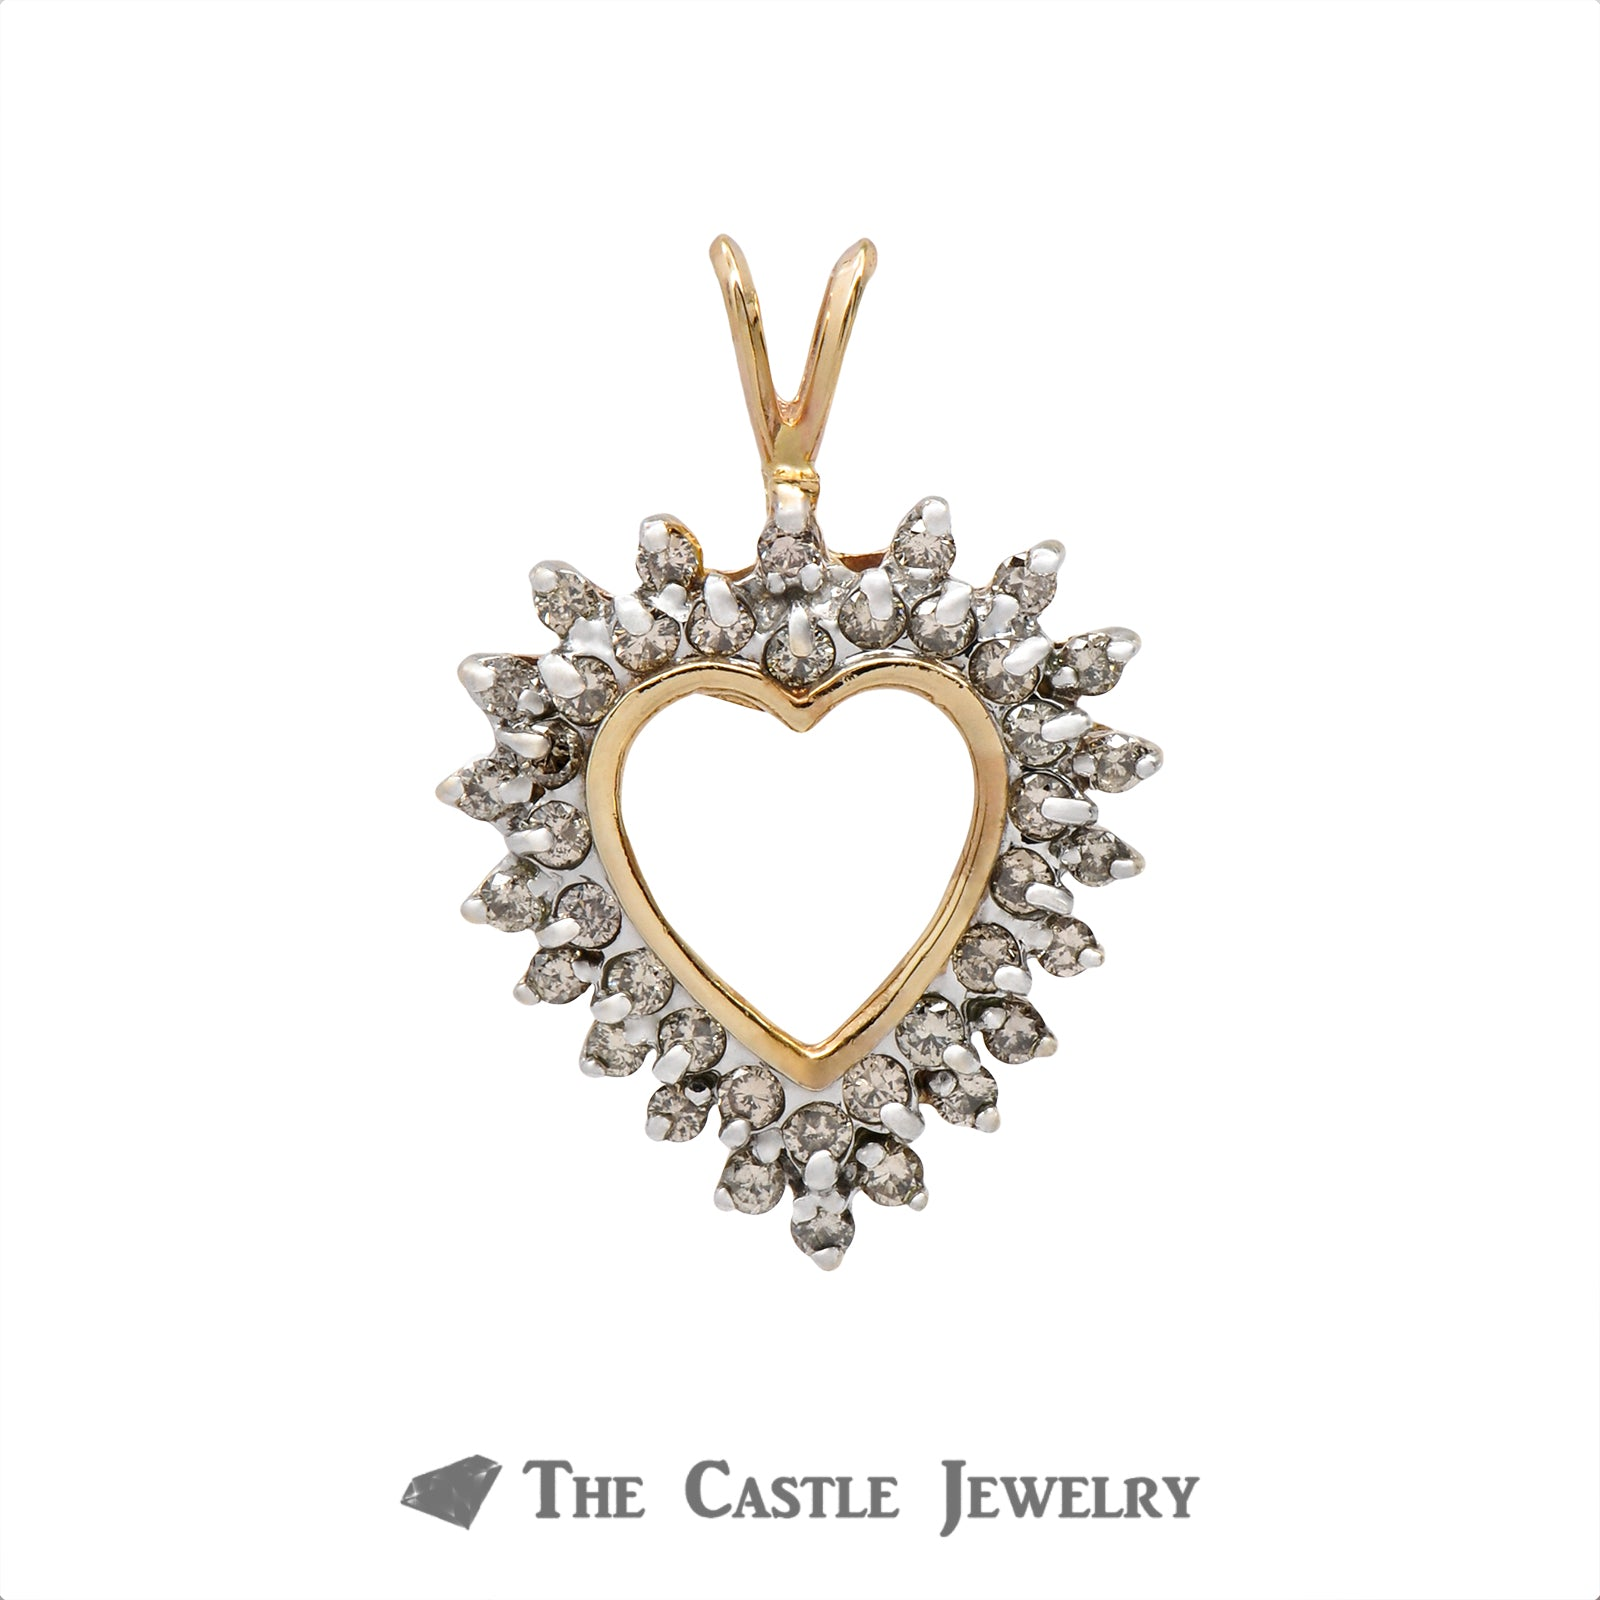 Heart Shaped Pendant Outlined with .75cttw Double Diamond Rows Crafted in 10k Yellow Gold